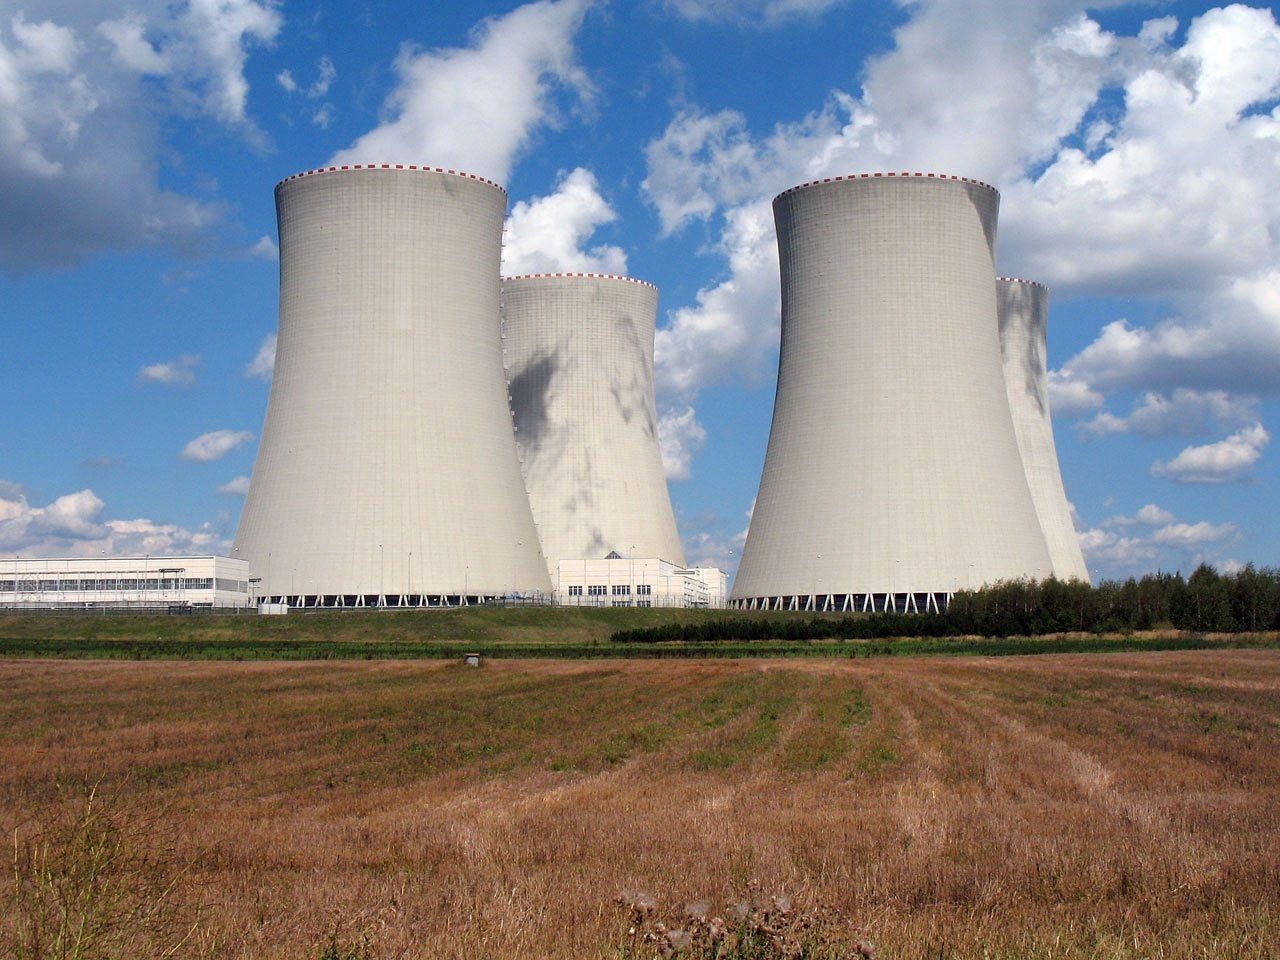 Groundwater contamination discovered at nuclear fuel facility